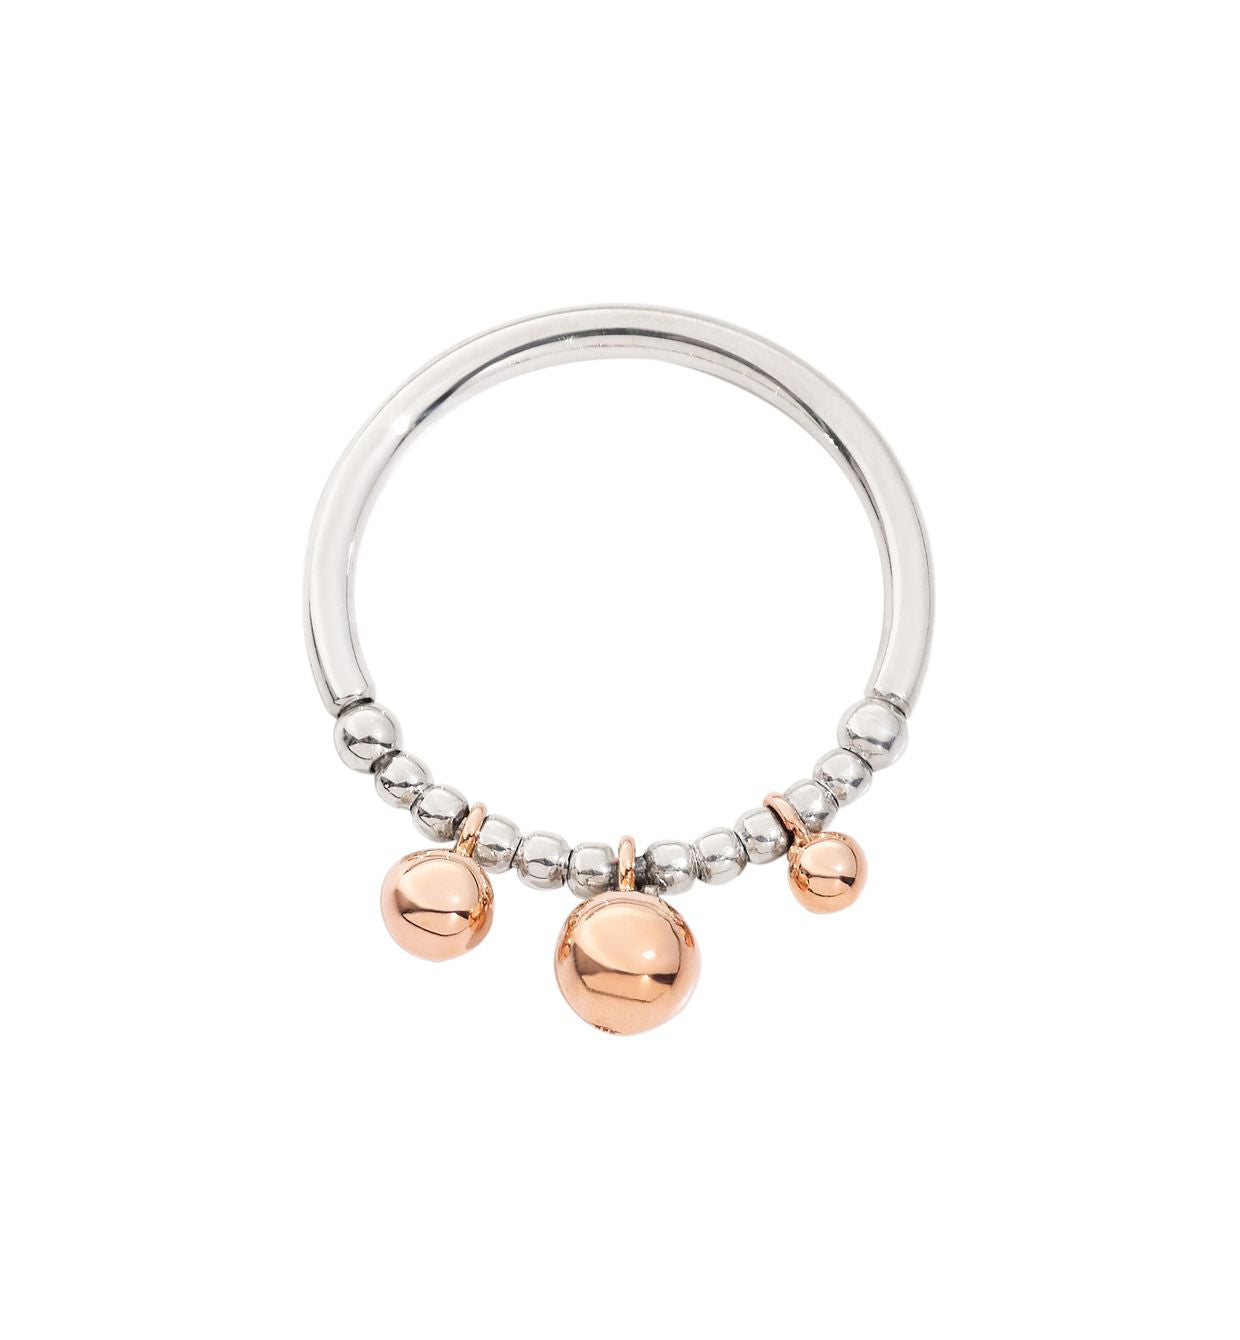 DoDo Bollicine Ring in Silver with 9k Rose Gold - Orsini Jewellers NZ